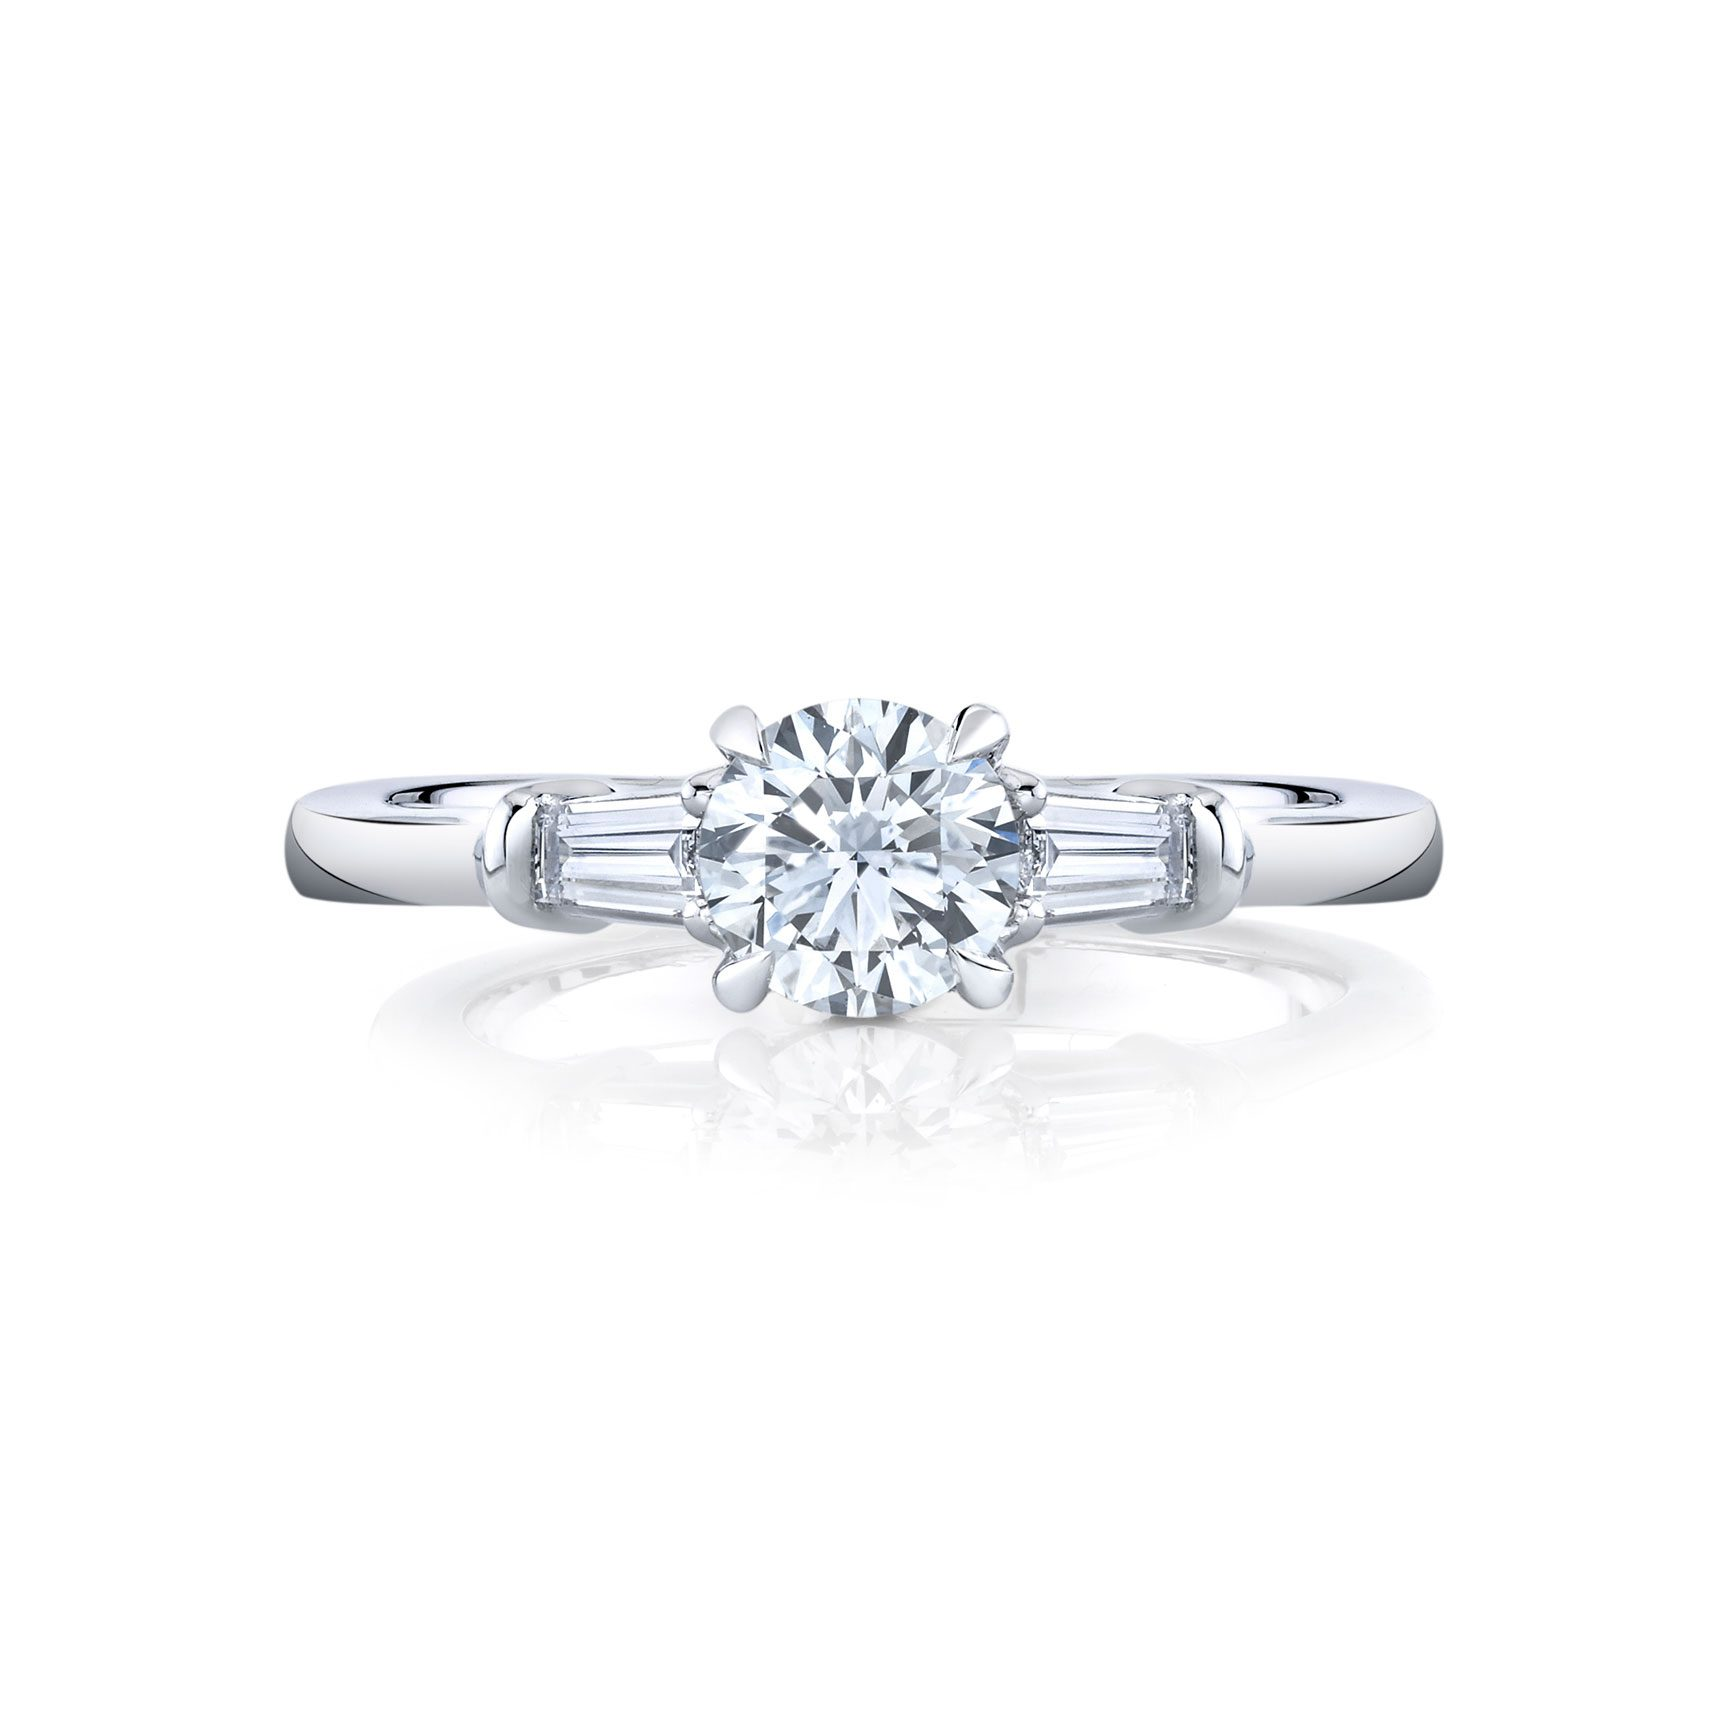 Claire Round Brilliant Three Stone Engagement Ring with tapered baguette diamond side stones in 18k White Gold Front View by Oui by Jean Dousset